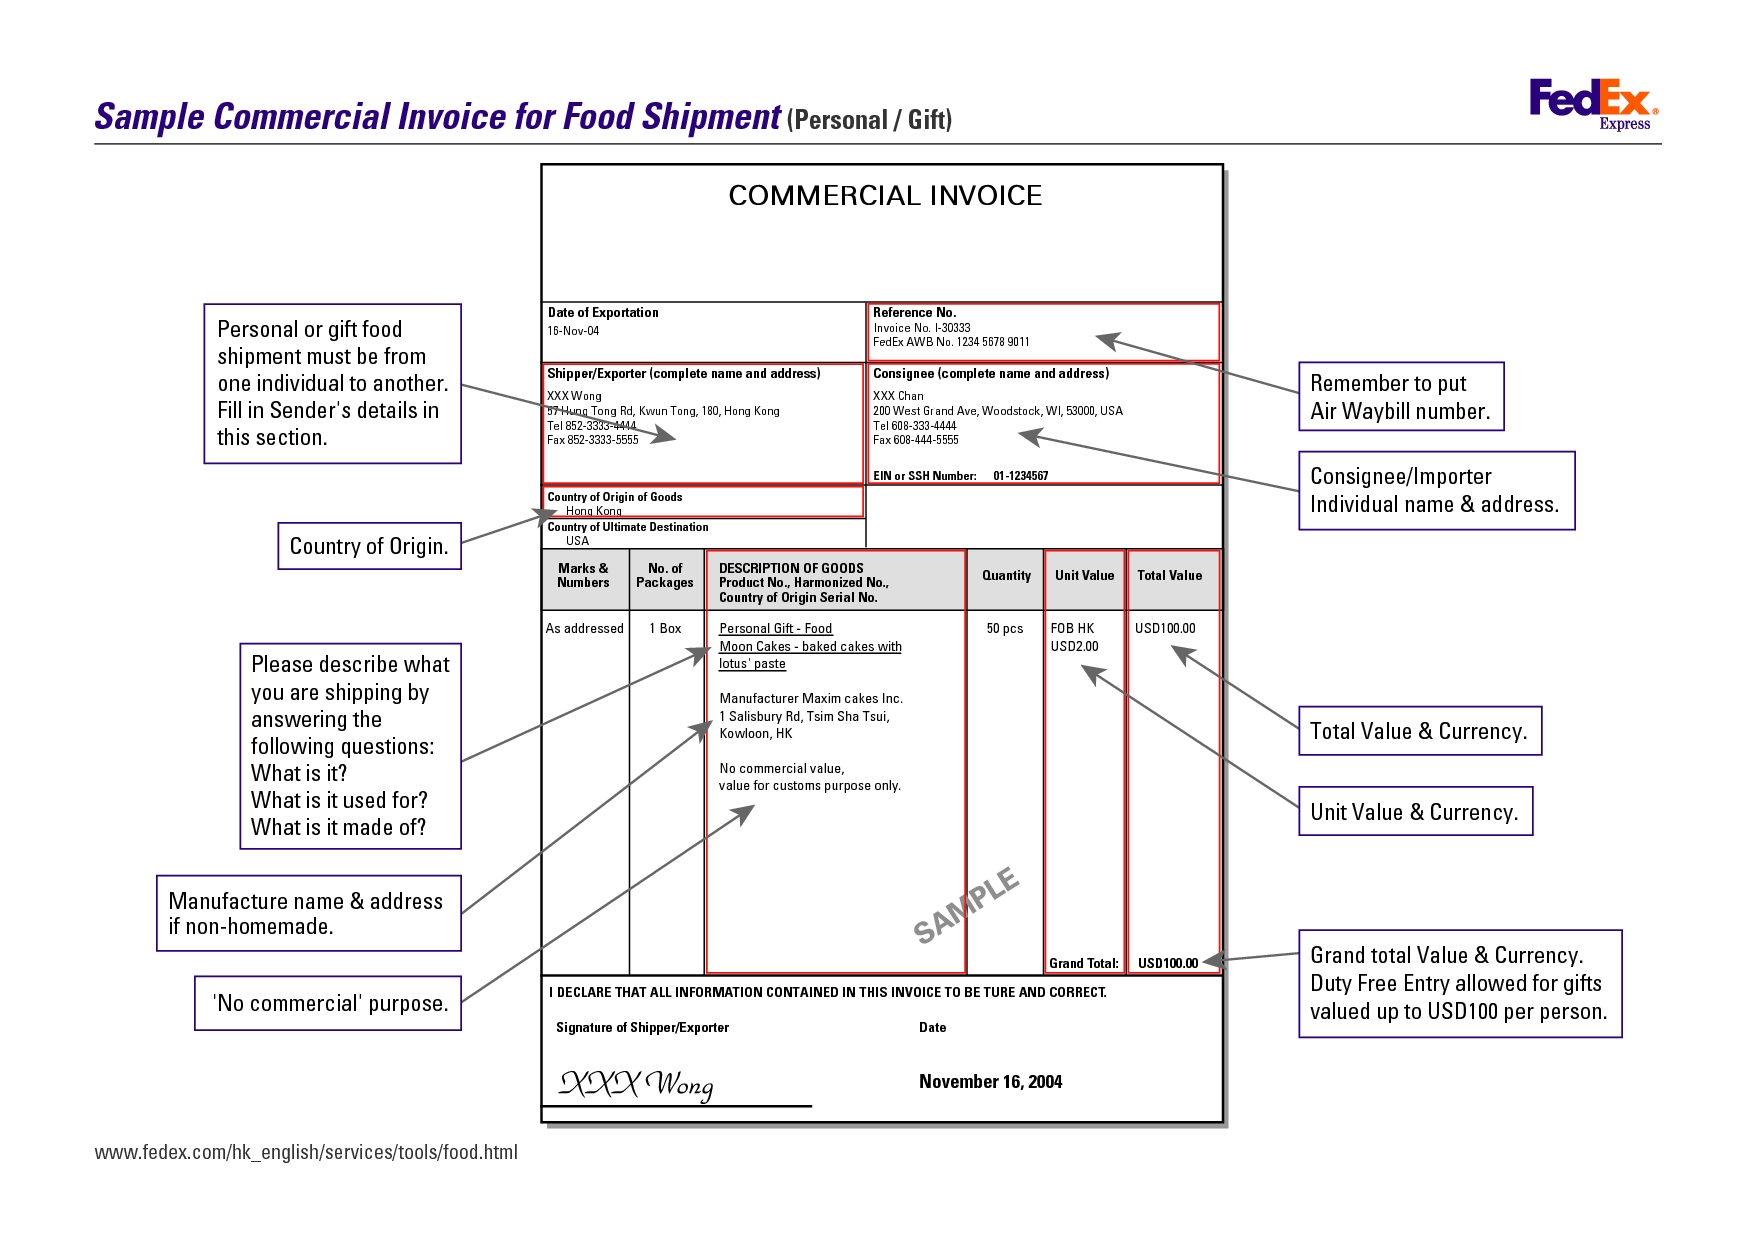 Commercial invoice example 9 fedex template form facile meanwhile